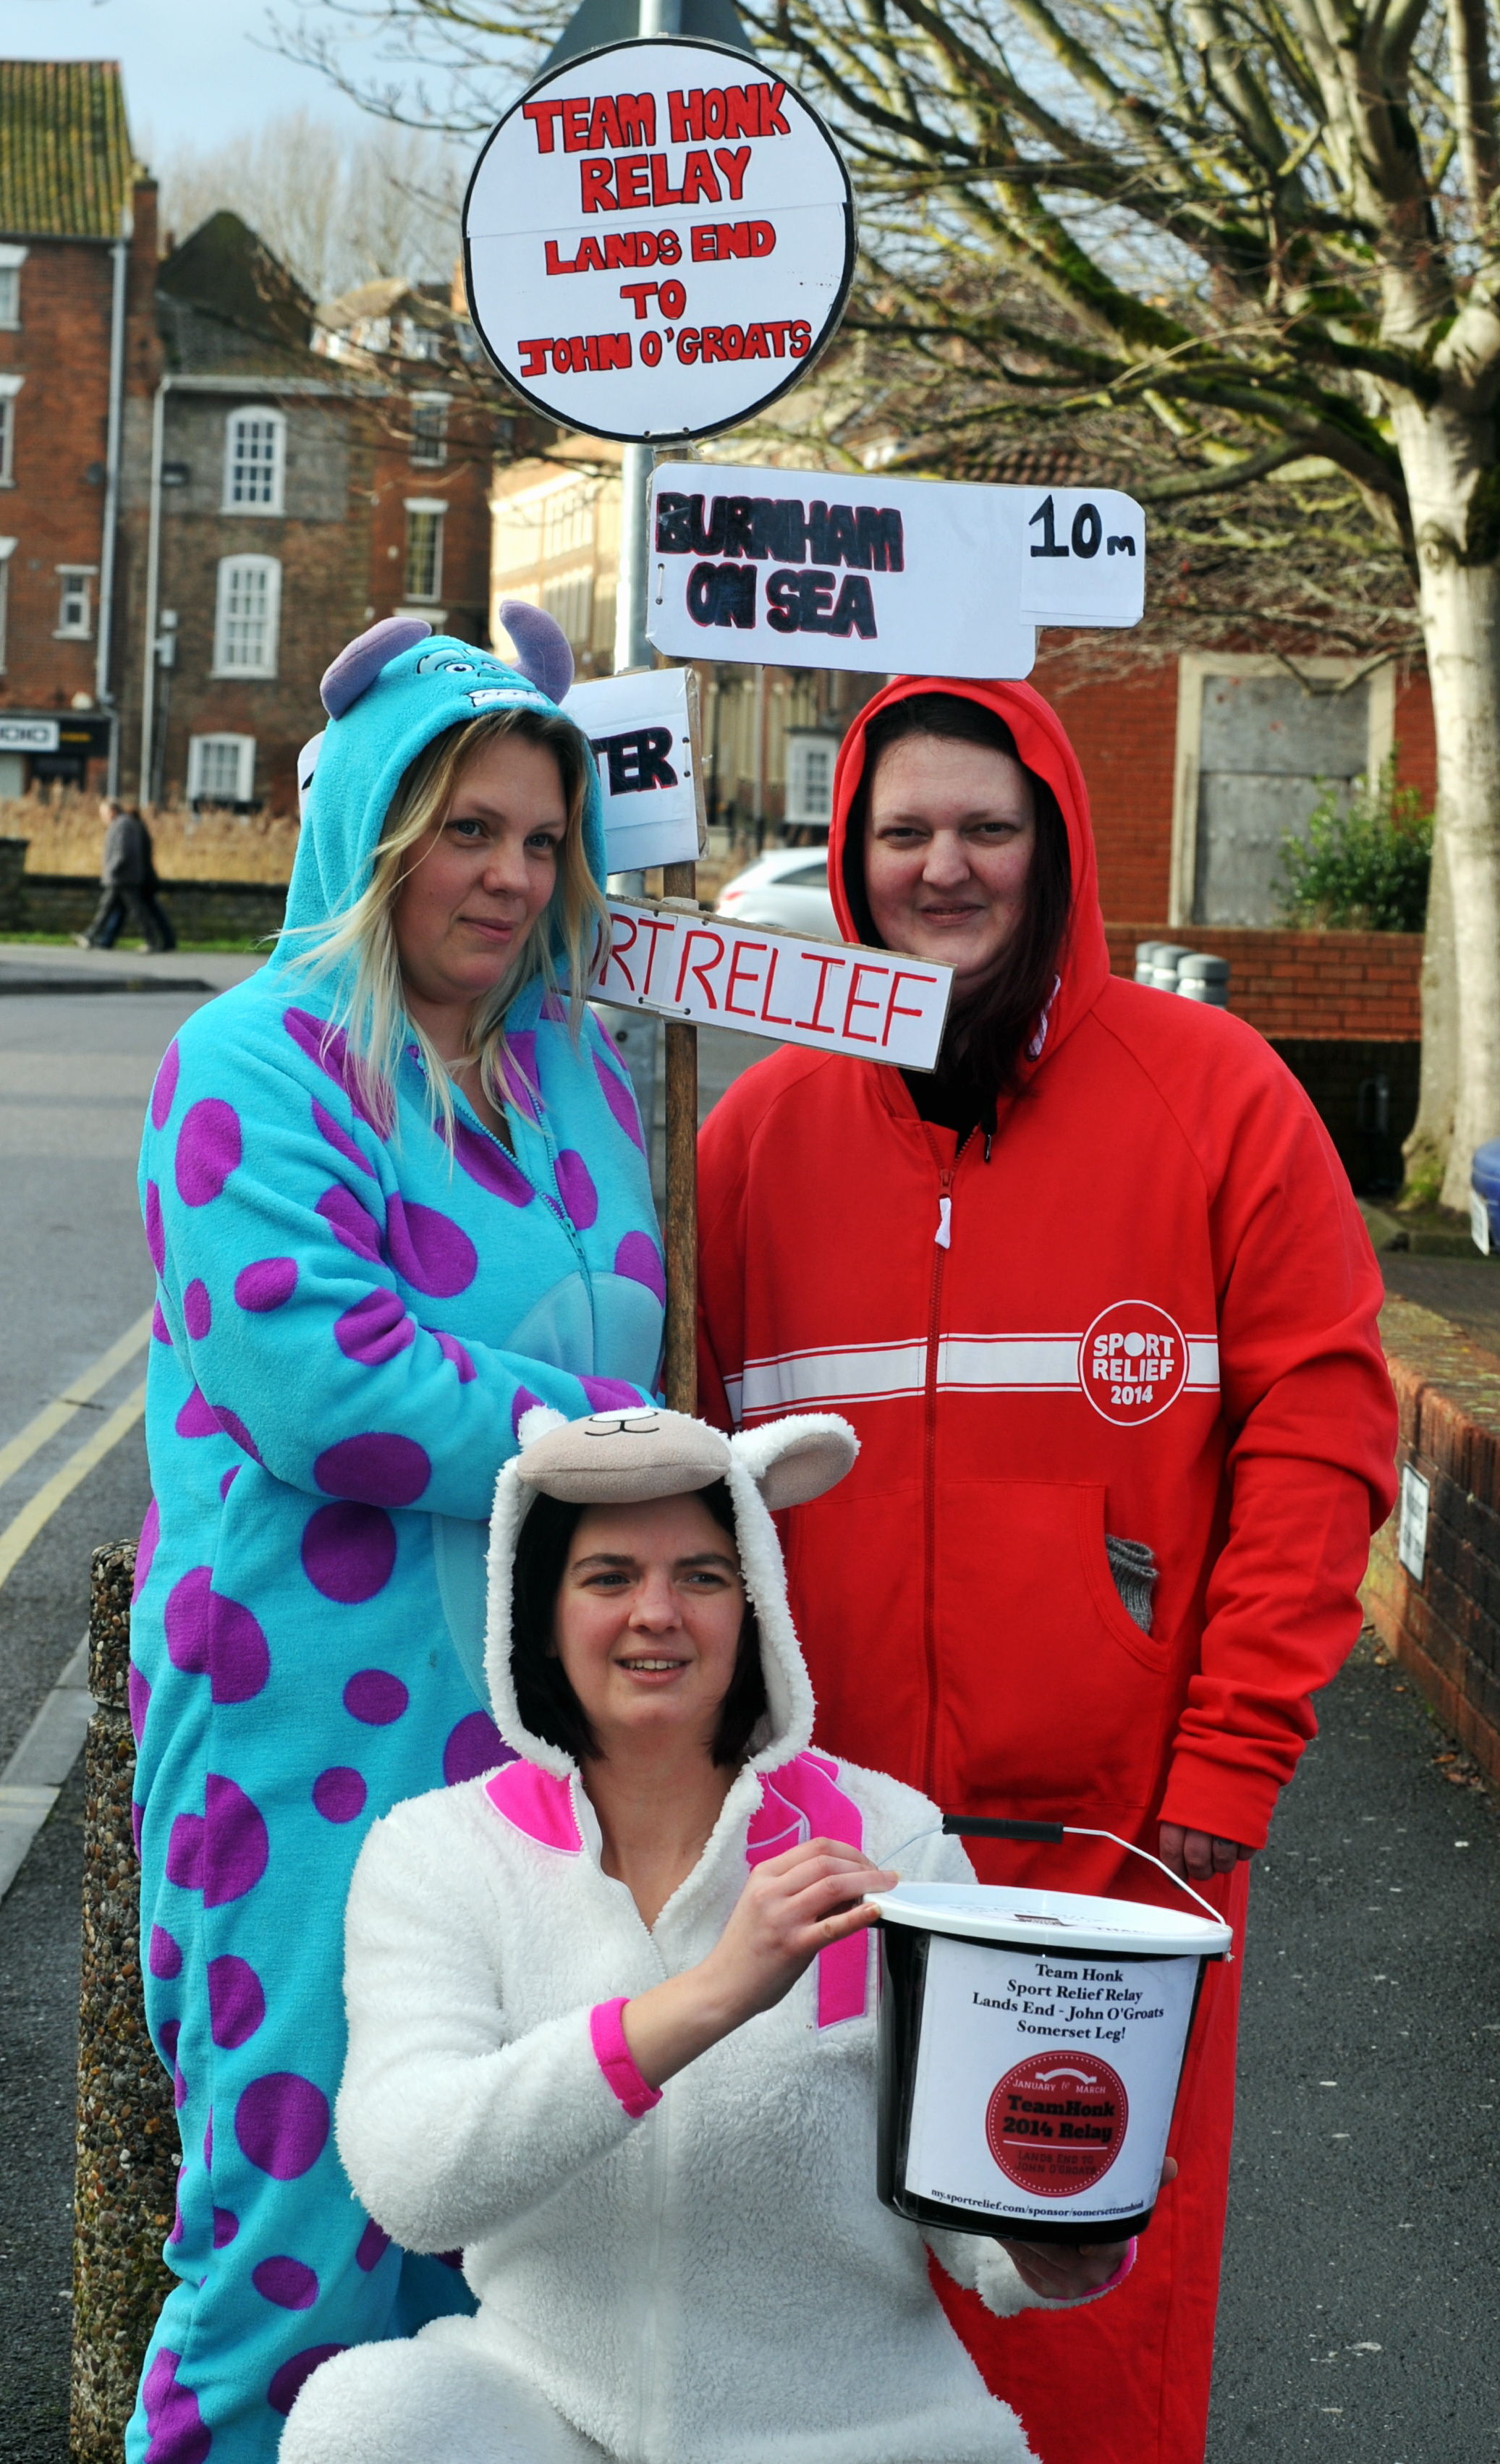 Poppy Coull (white), Tammy Ellis (blue) and Nicola Noad (red) in the Team Honk relay.